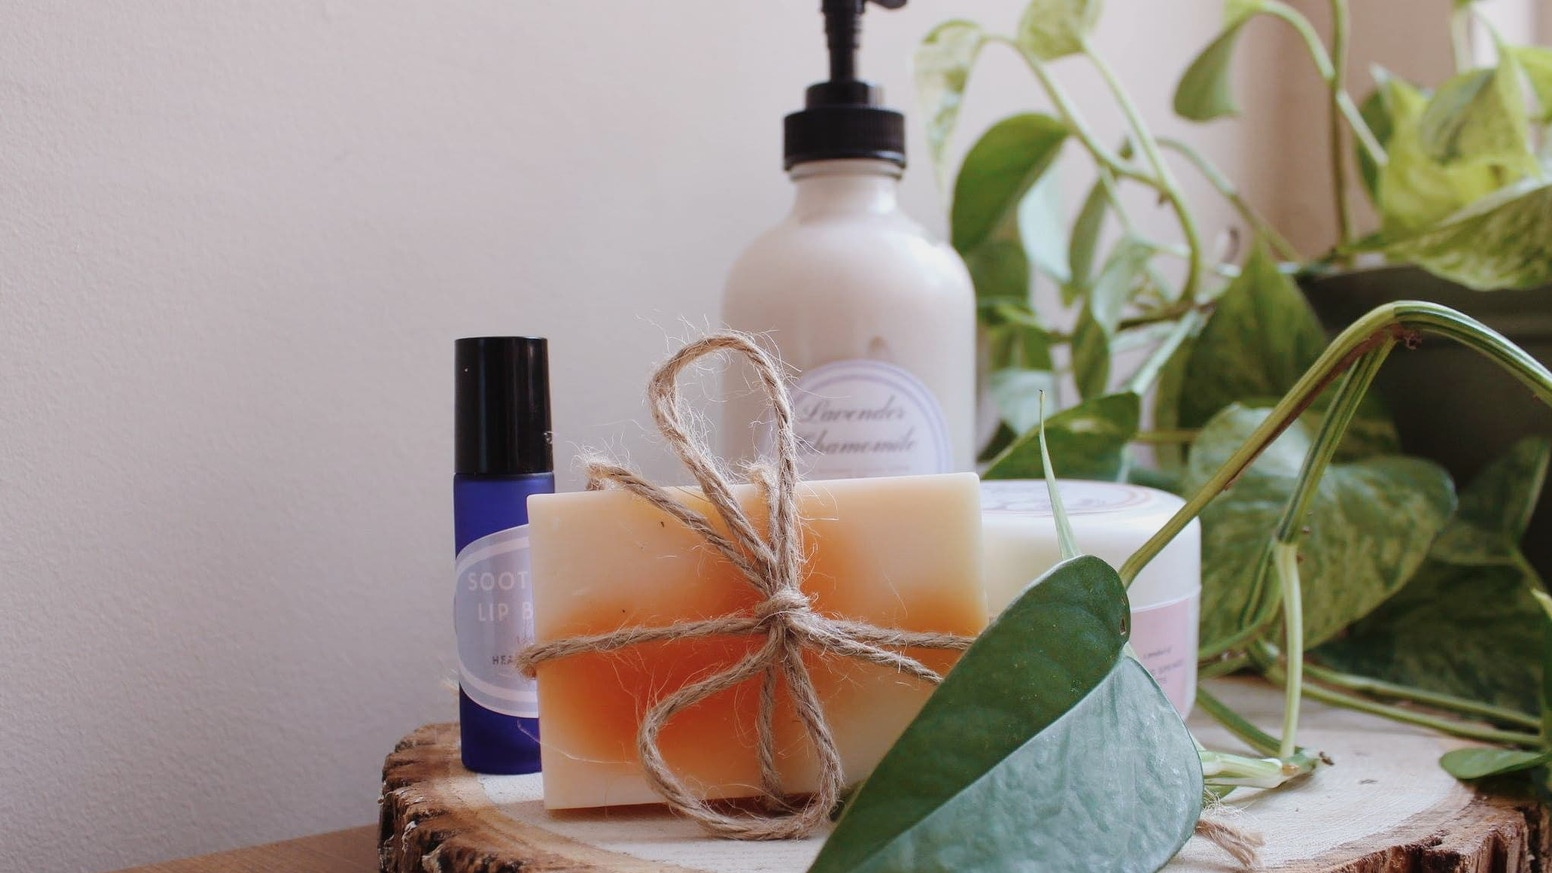 Natural, handmade skin and personal care products to support pregnant women in crisis on their journey to stability.